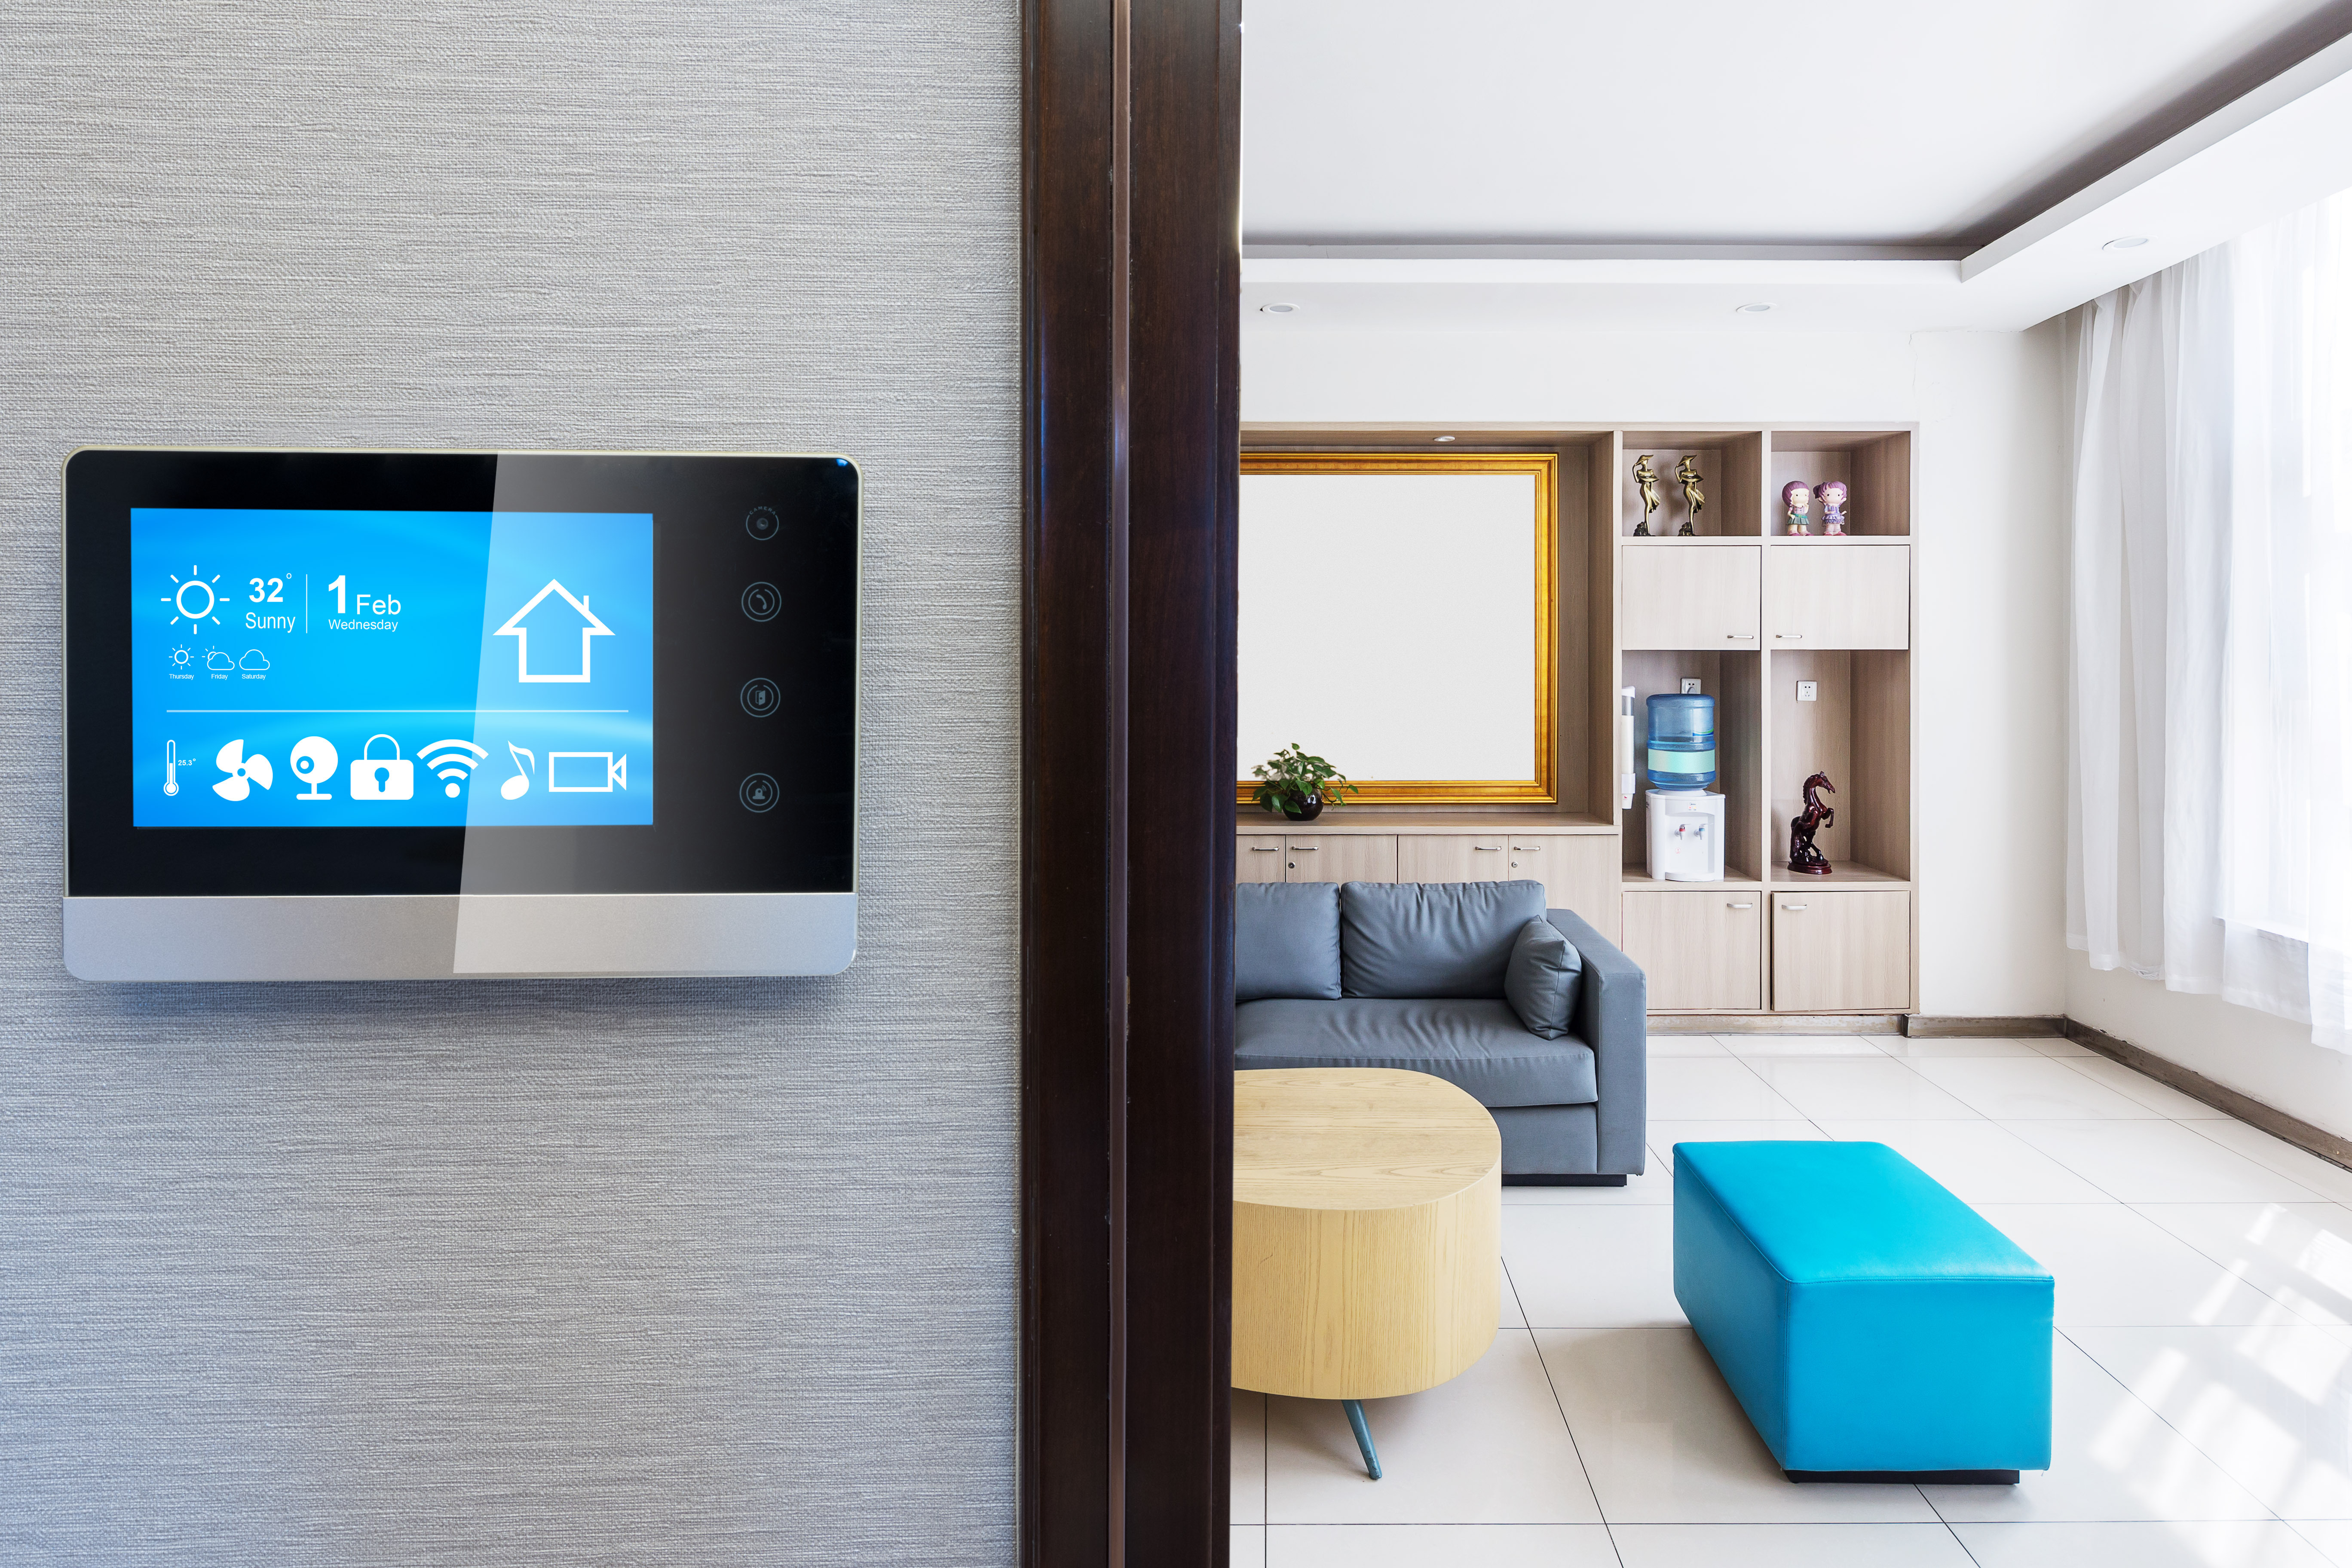 Intelligent touch screens will be more prevalent in the smart homes of tomorrow